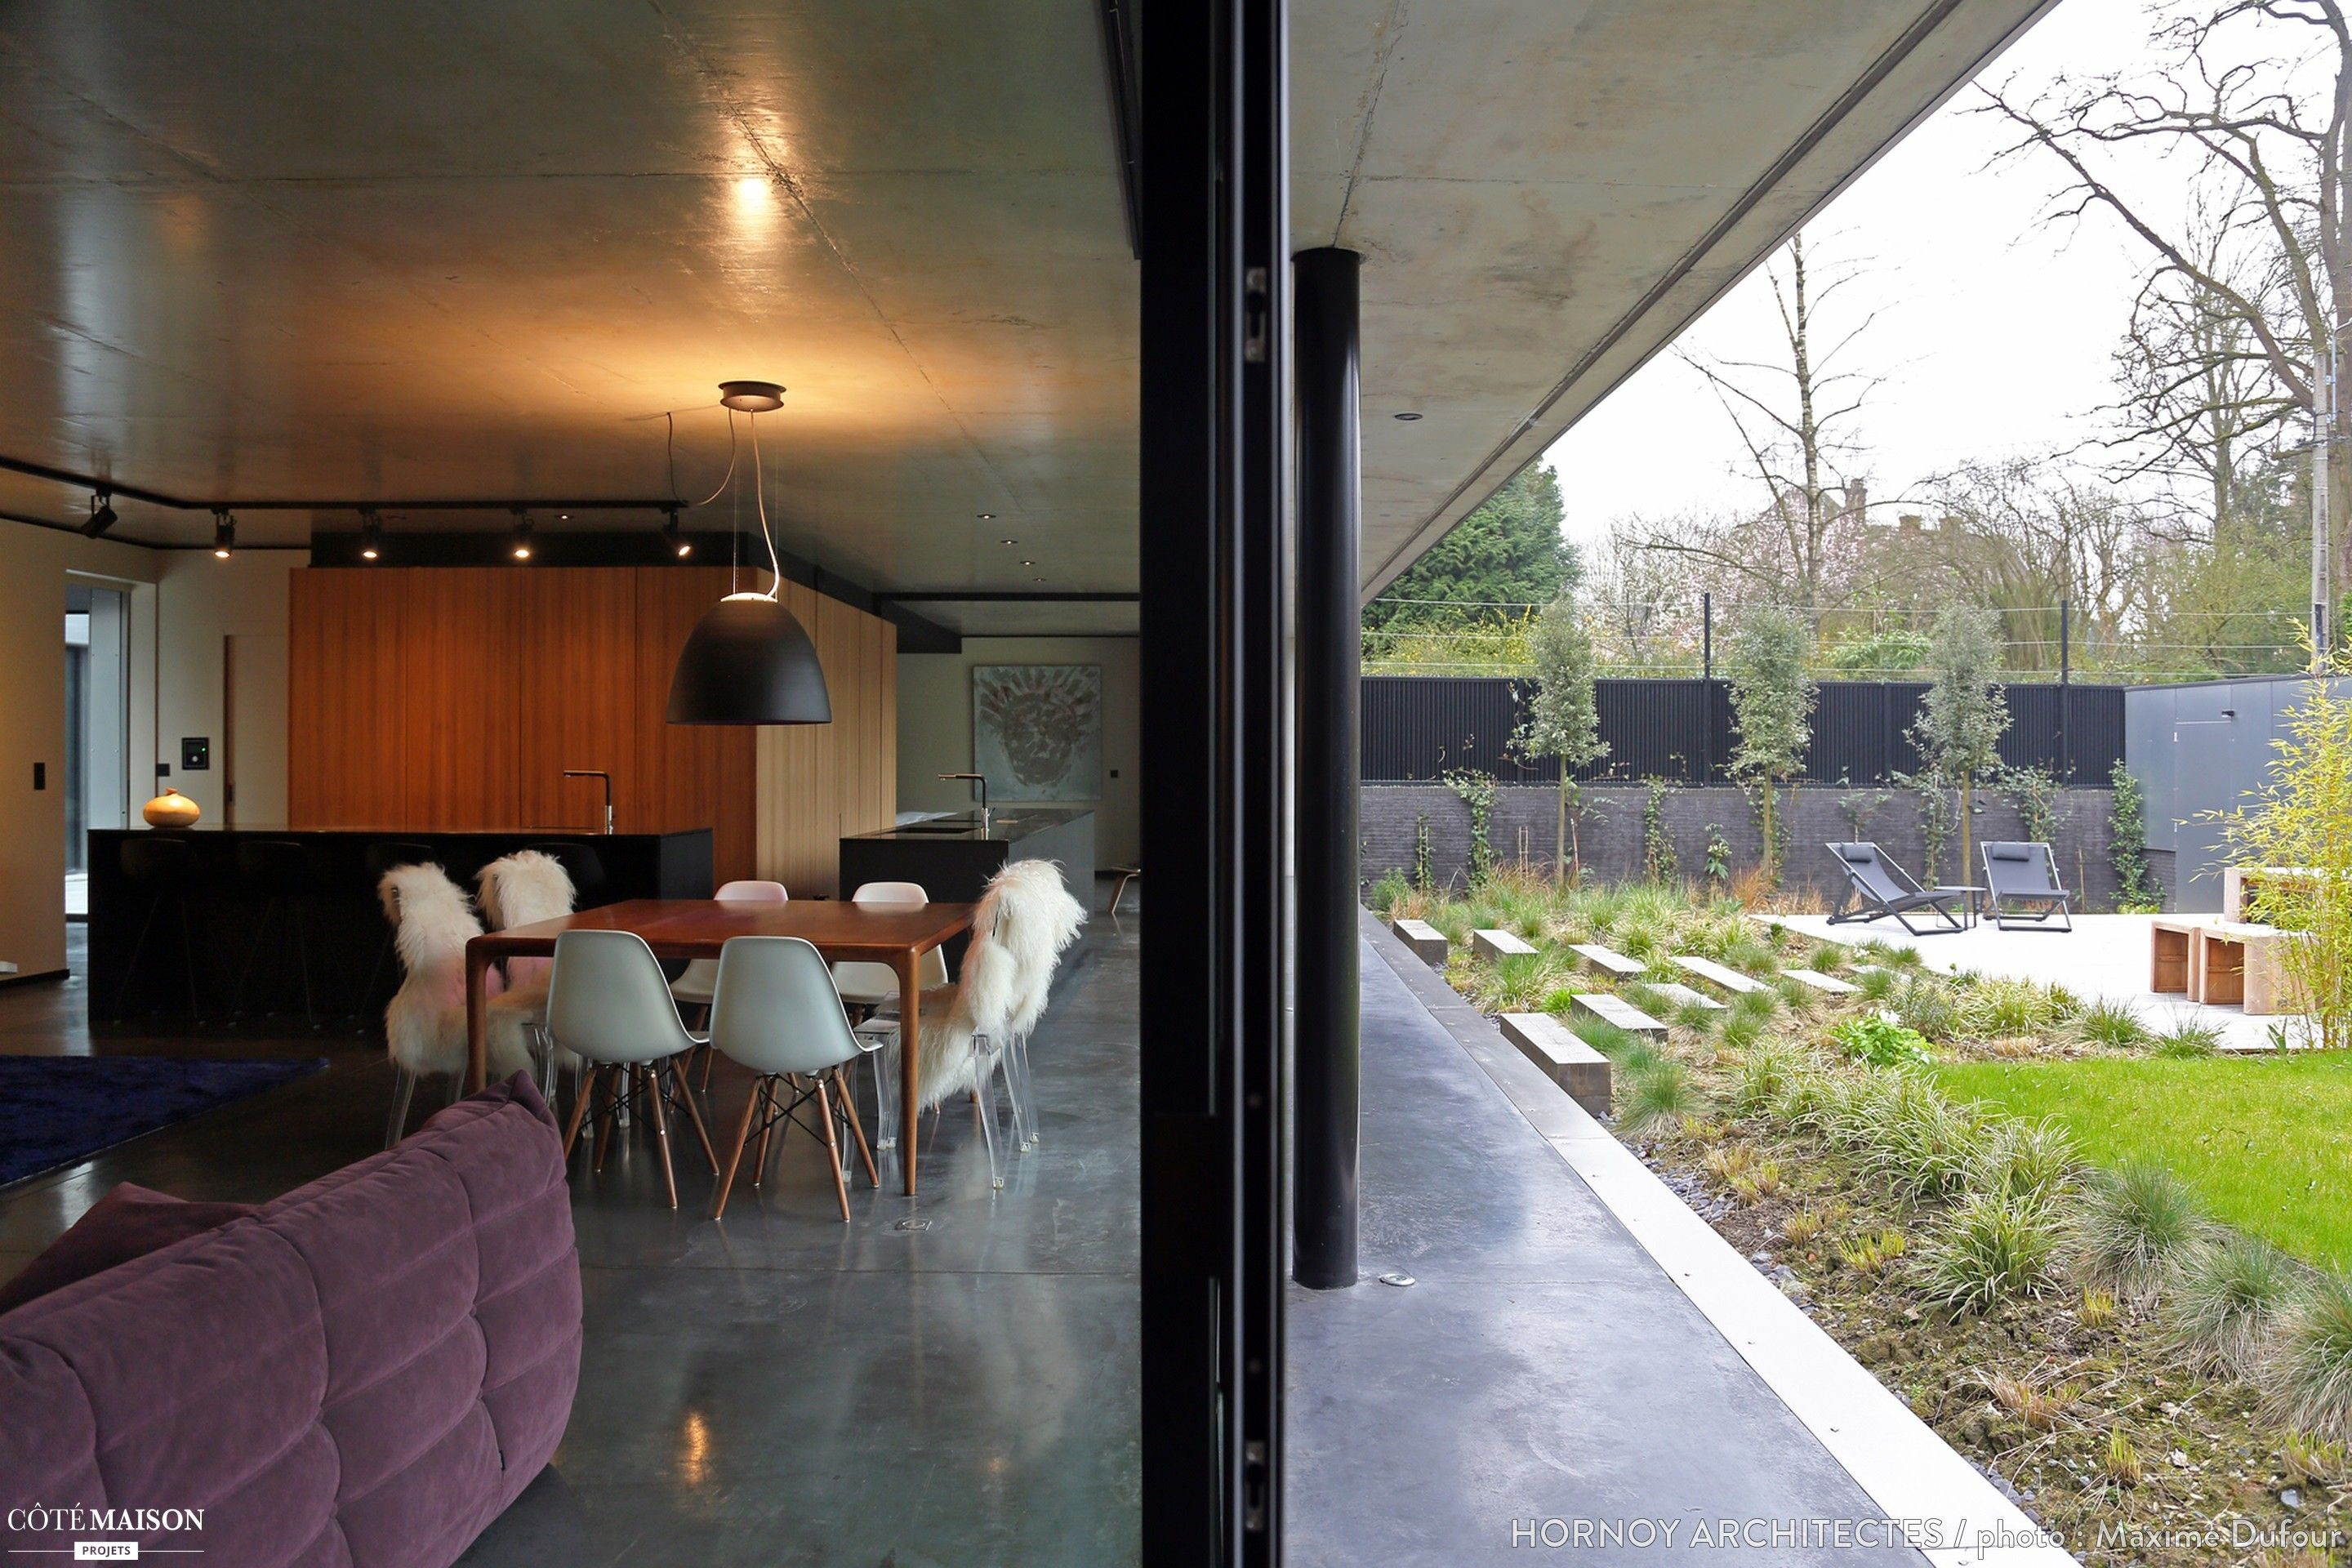 Maison contemporaine avec patio, Hornoy Architectes - Côté Maison ...